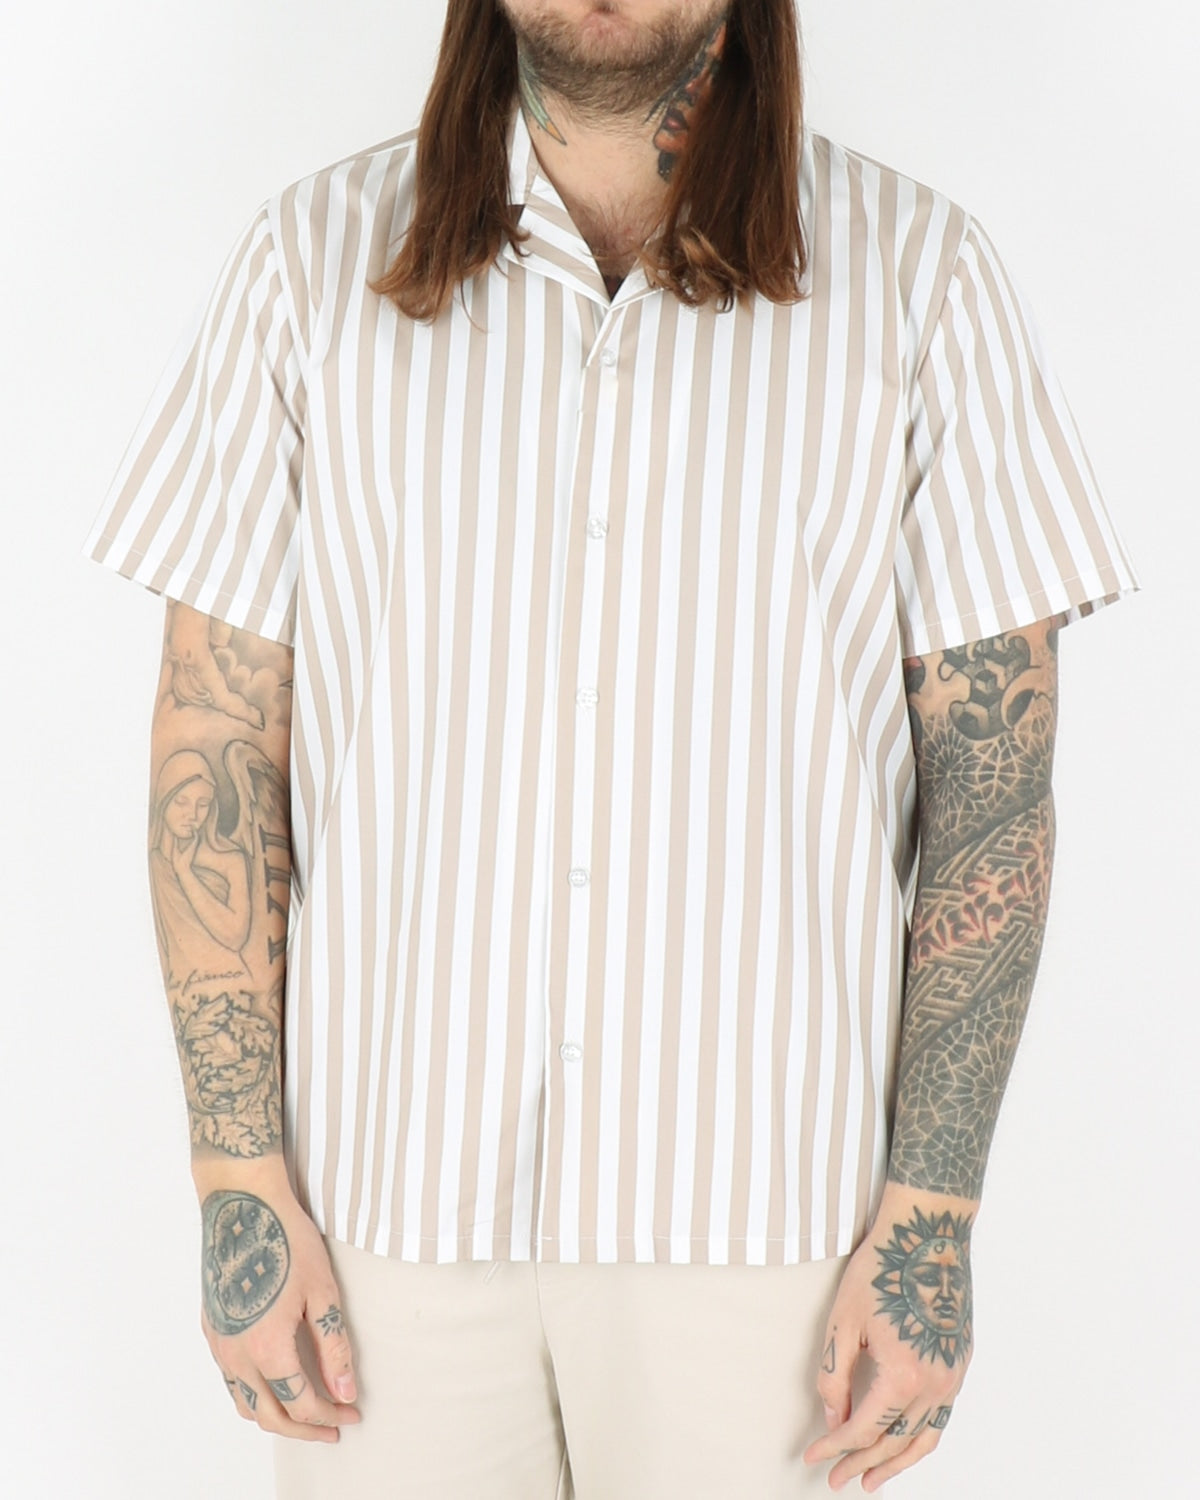 legends_clark shirt_sand stripe_1_3